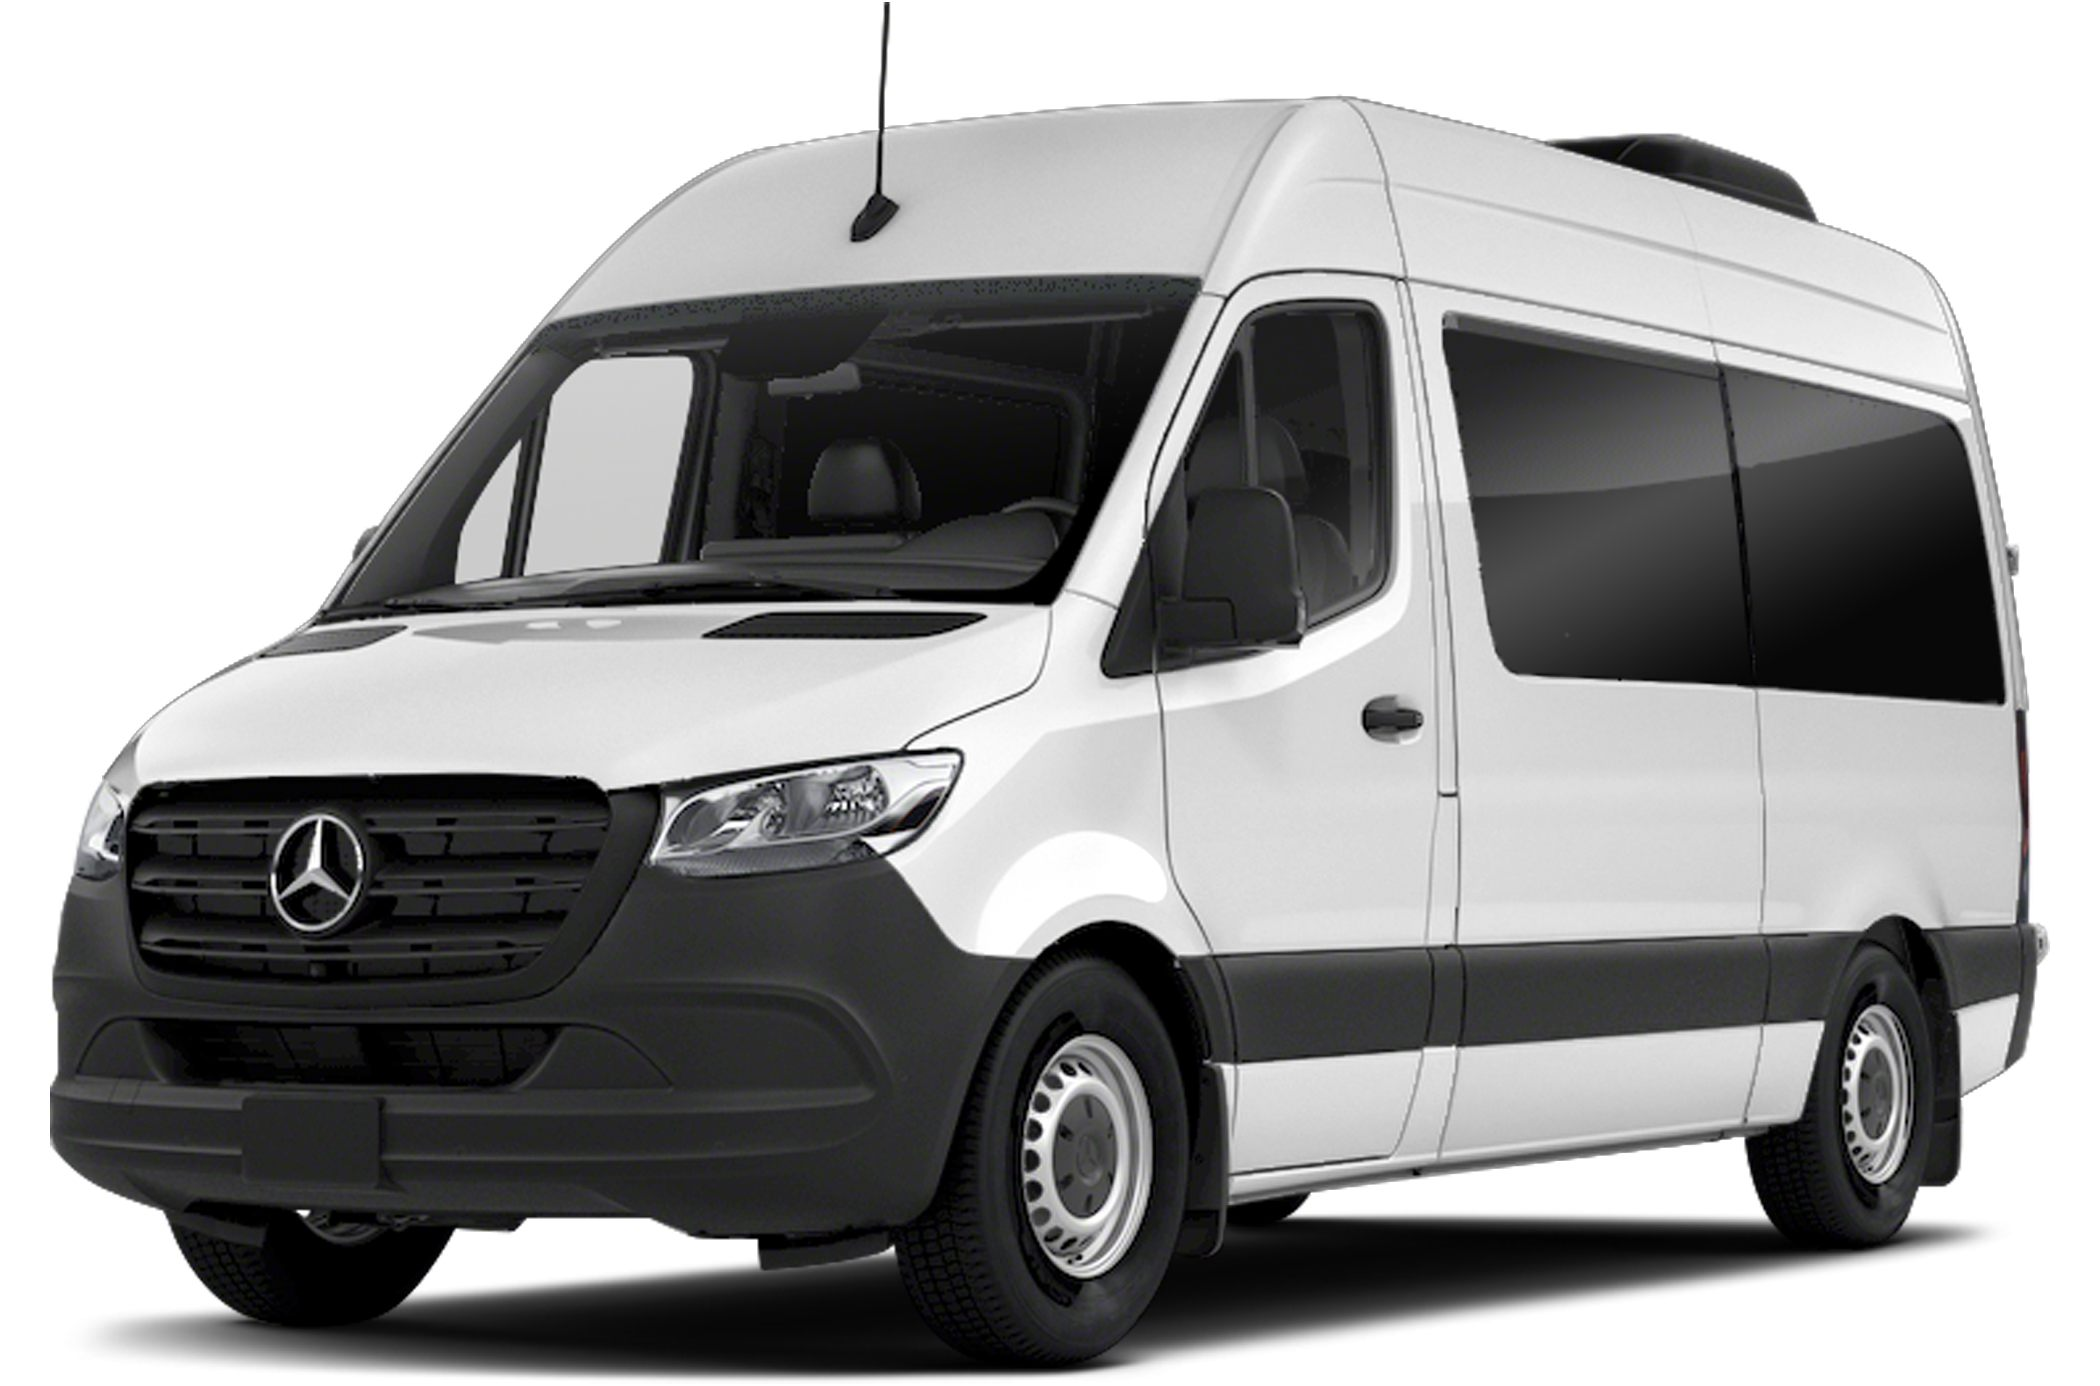 2017 Mercedes Benz 2500 Standard Roof V6 >> 2020 Mercedes Benz Sprinter 2500 Standard Roof V6 Sprinter 2500 Passenger Van 144 In Wb 4wd Specs And Prices